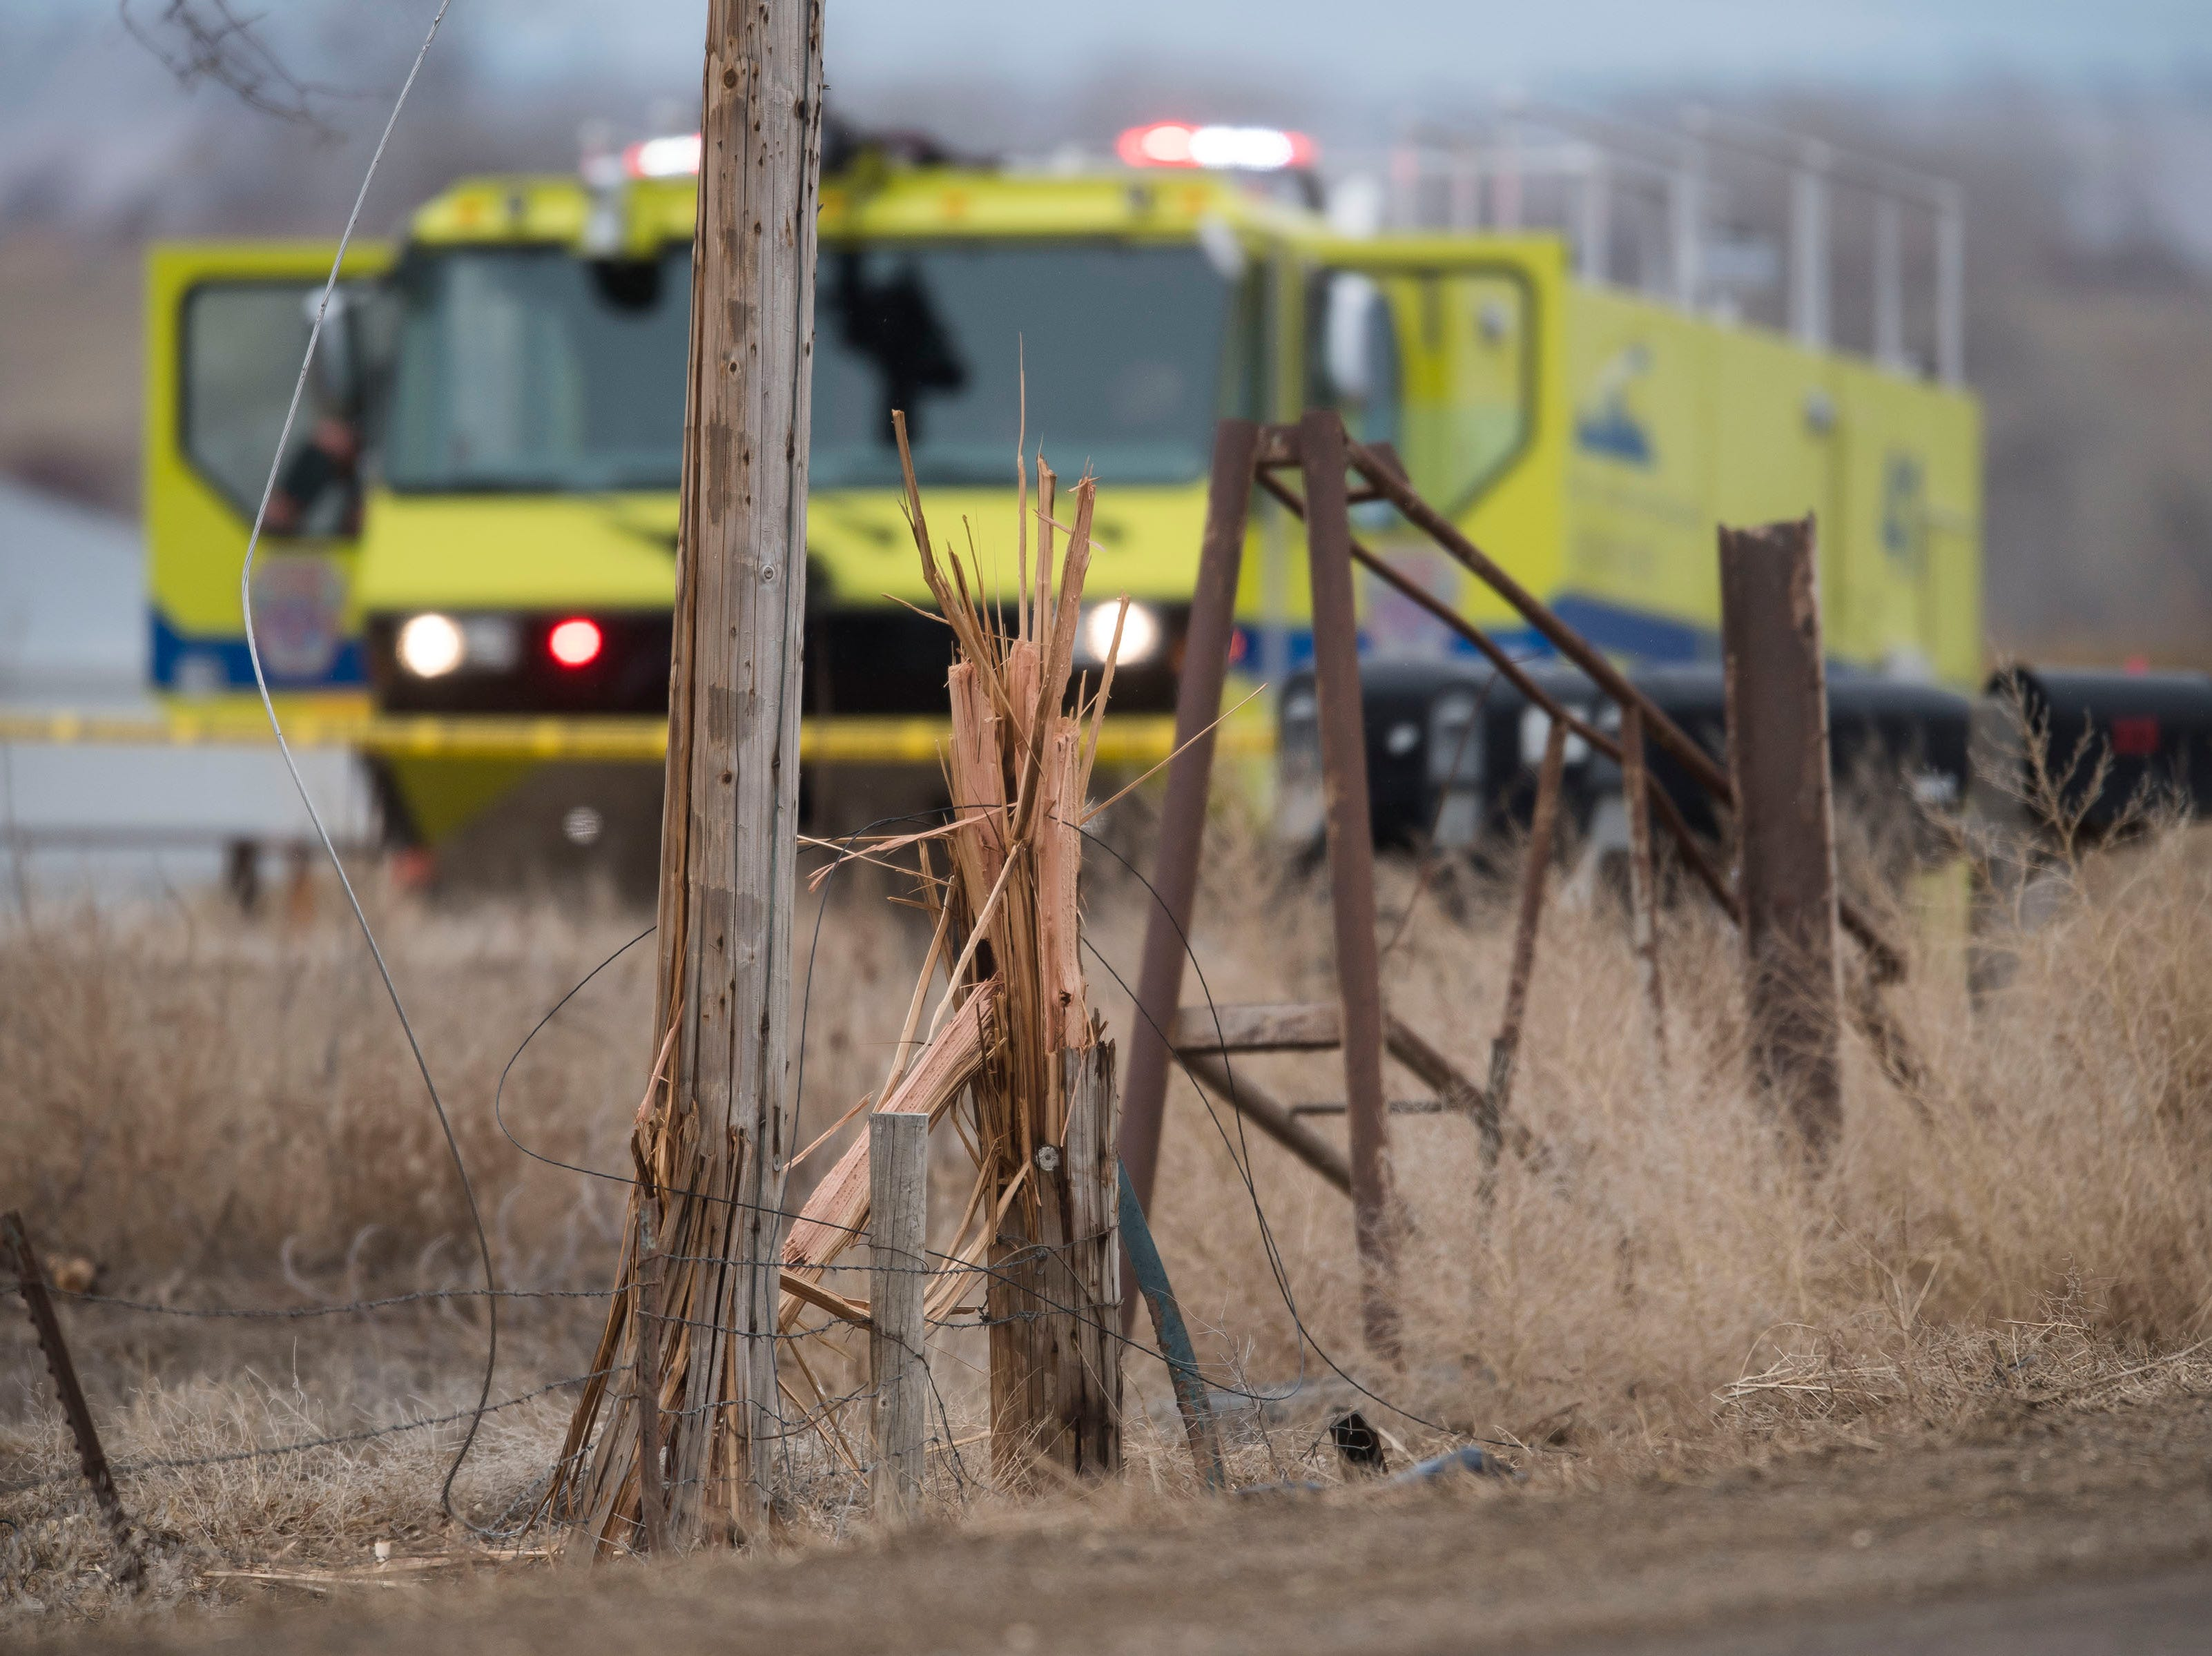 A power pole sits upright where it was sheared off Saturday, March 23, 2019 as a single-engine plane crashed west of the intersection of East County Road 30 and Boyd Lake Avenue in Fort Collins, Colo. Three people on the plane were hurt.